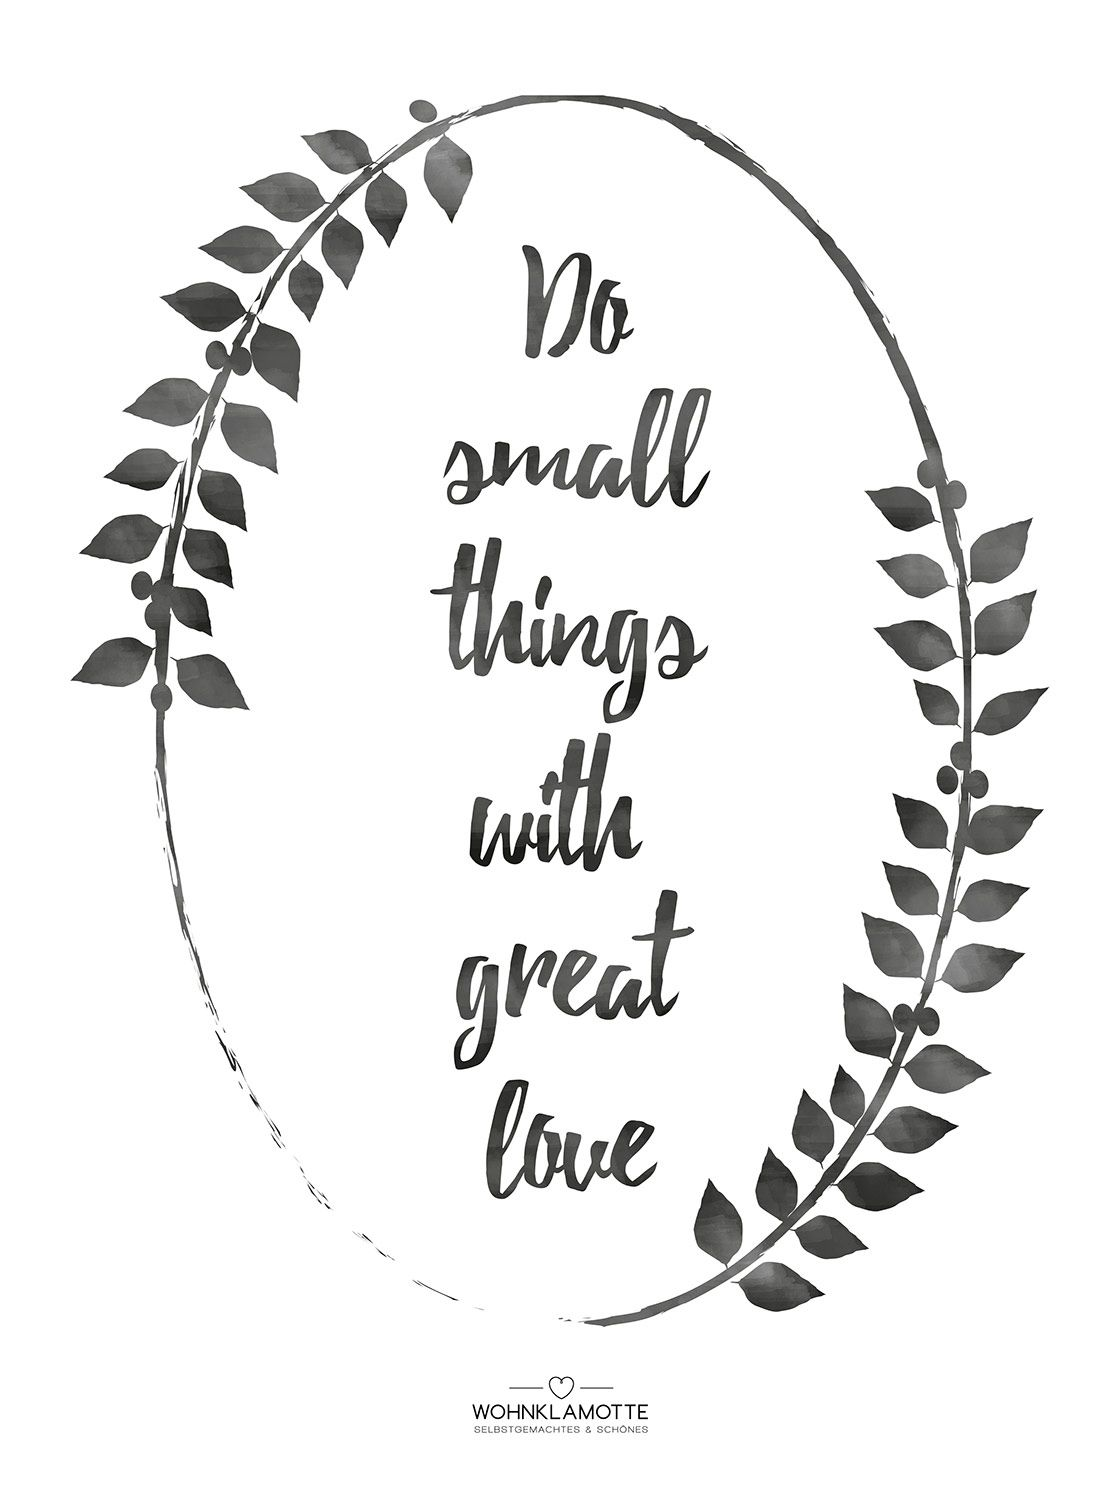 illustration von Statement do small things with great love